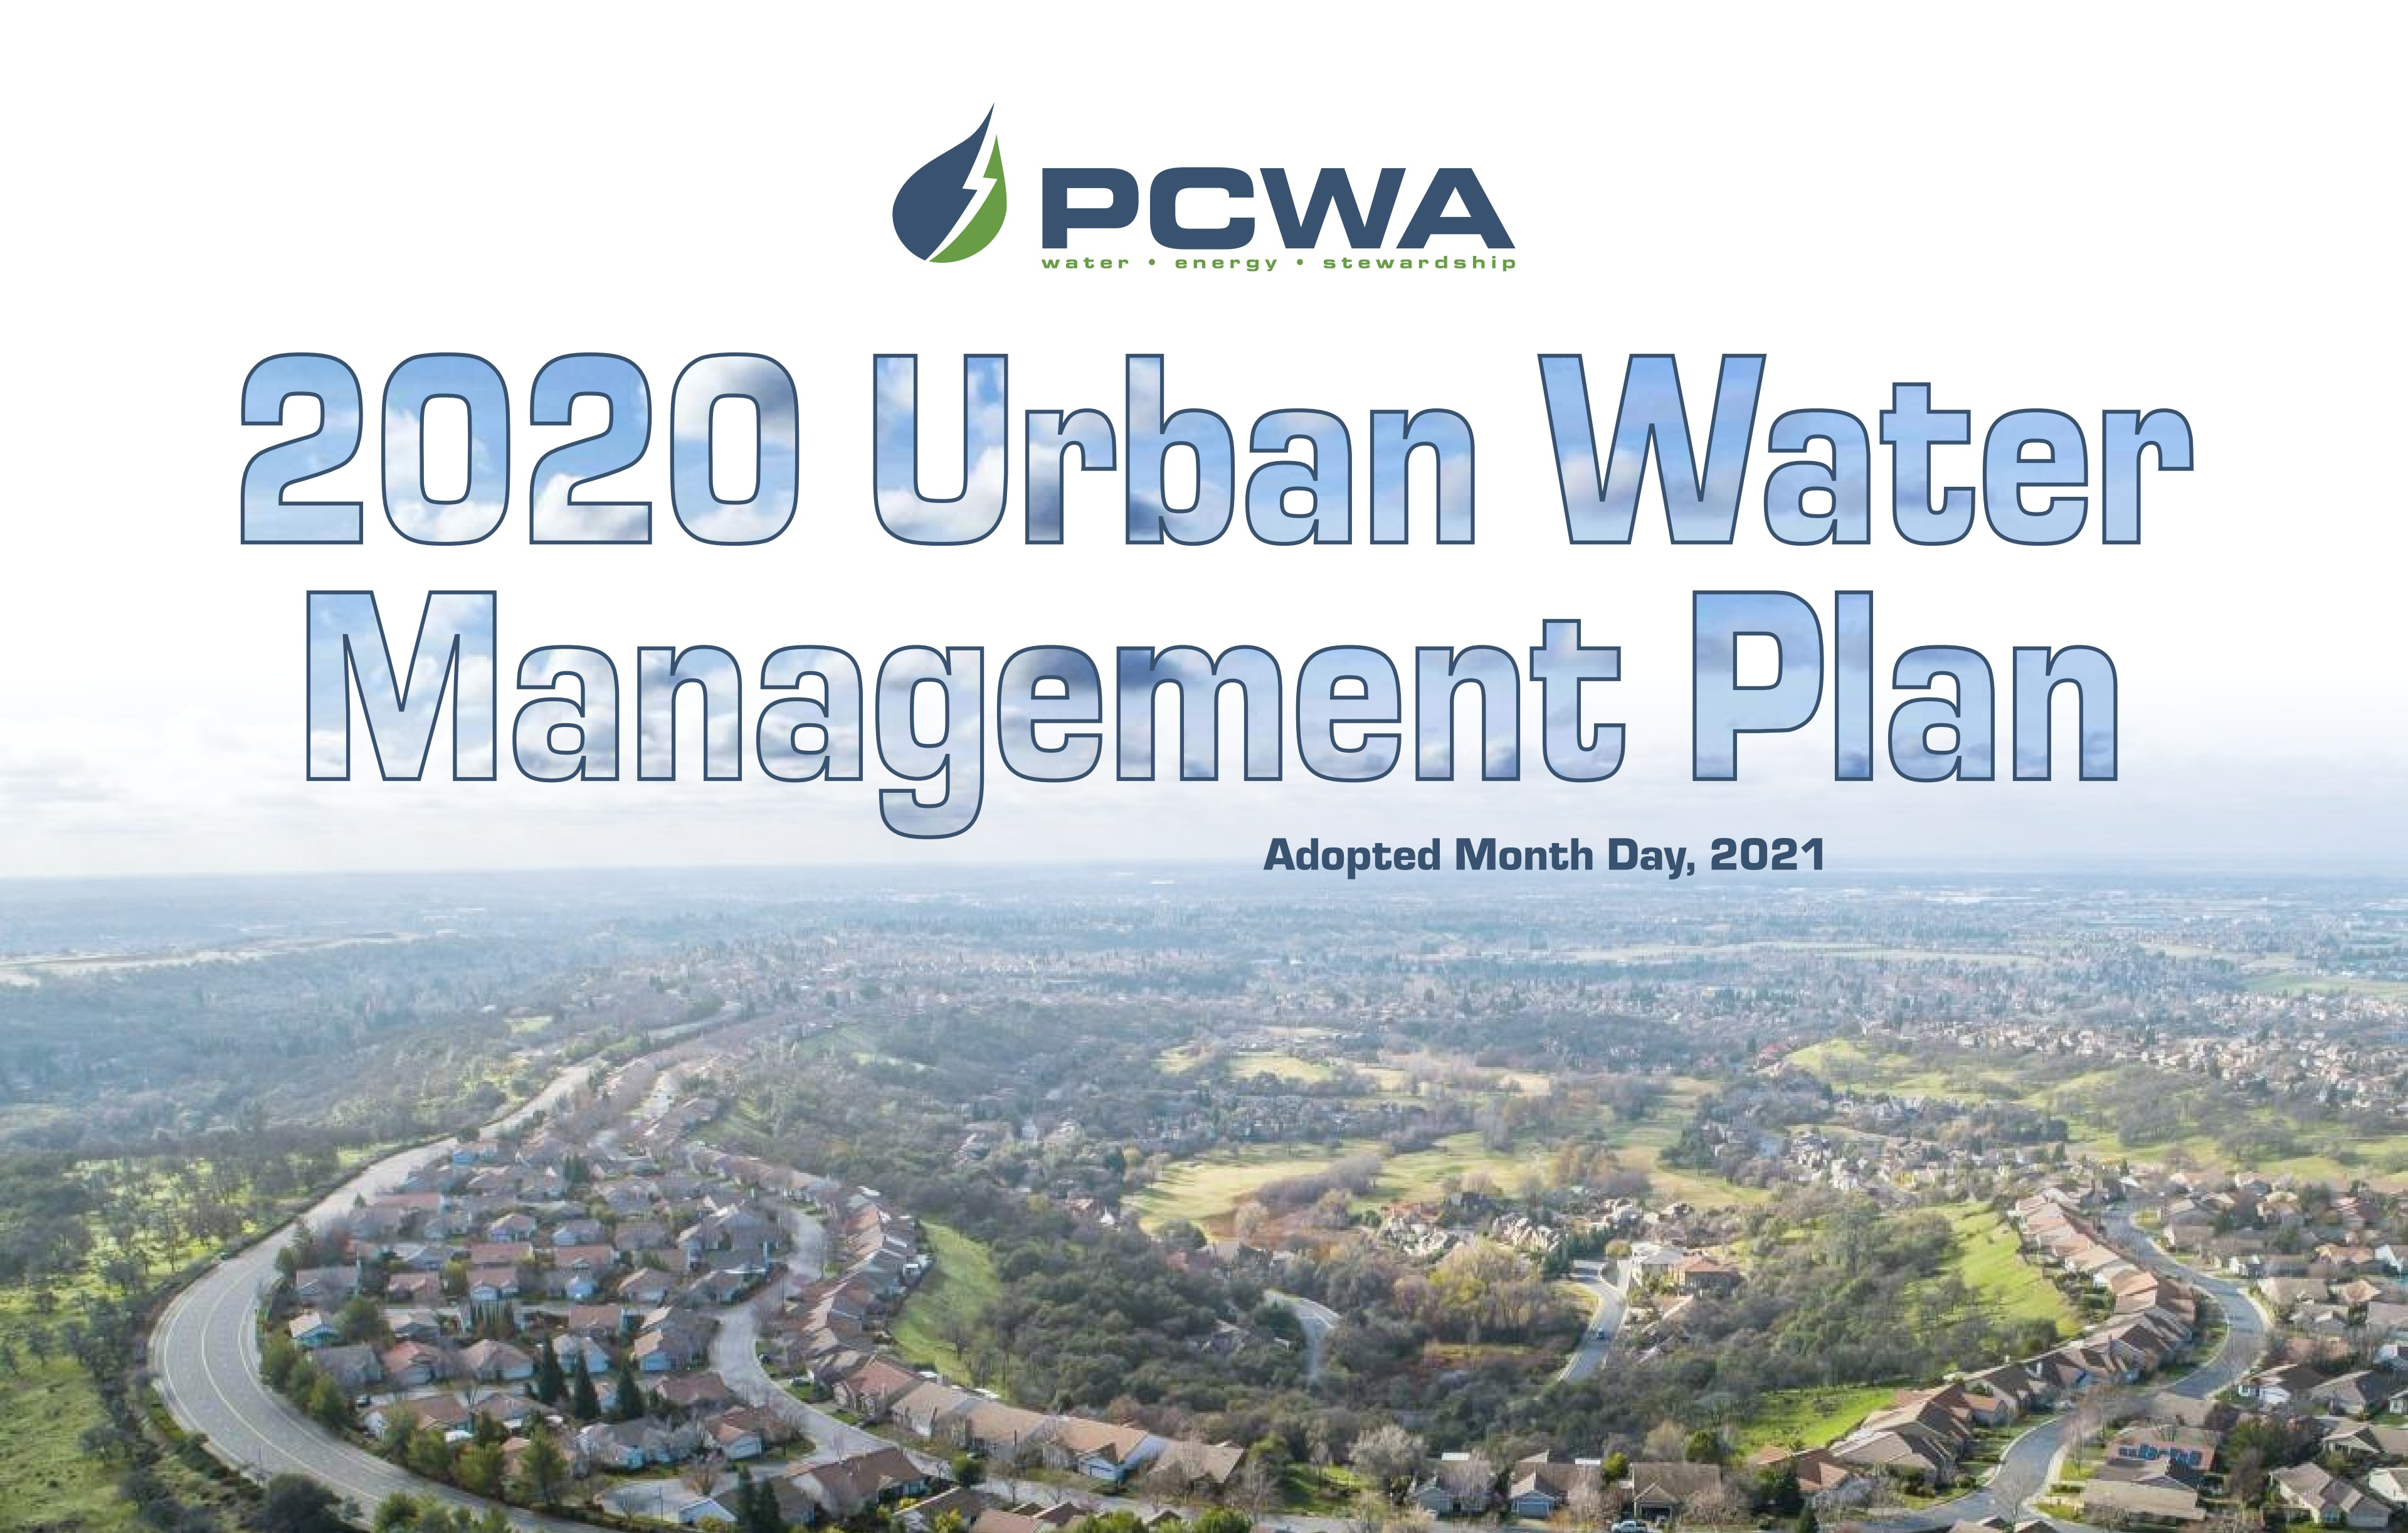 Thumbnail and link for PCWA 2020 Urban Water Management Plan, public draft